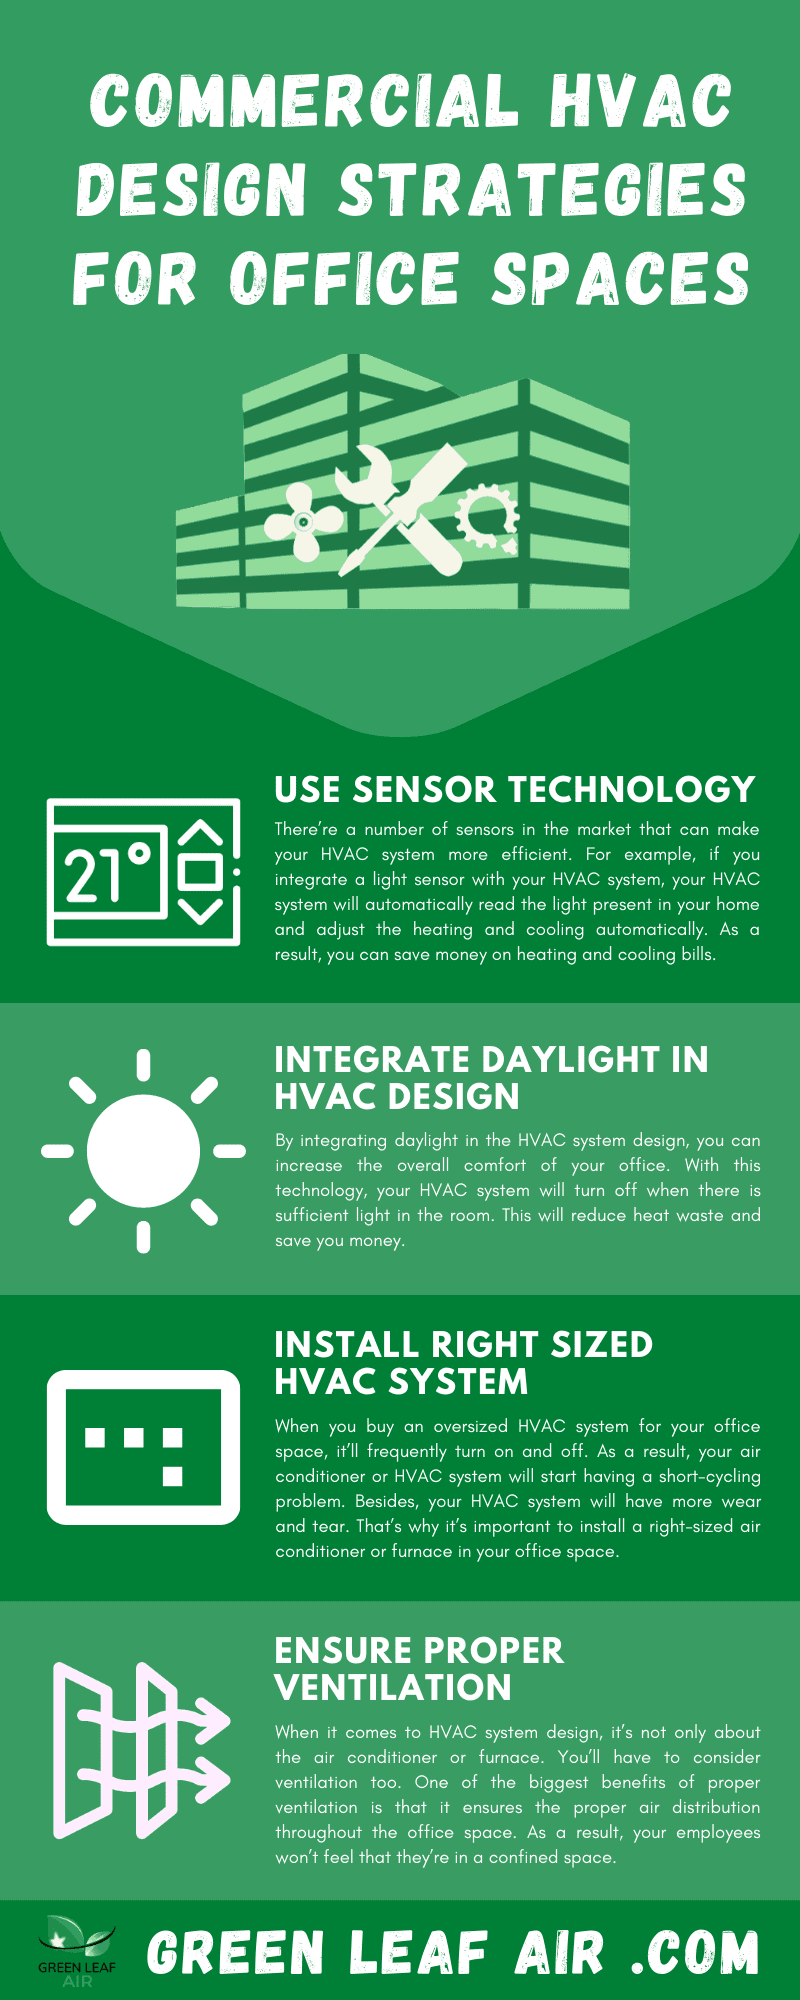 Commercial HVAC Design Strategies for Office Spaces